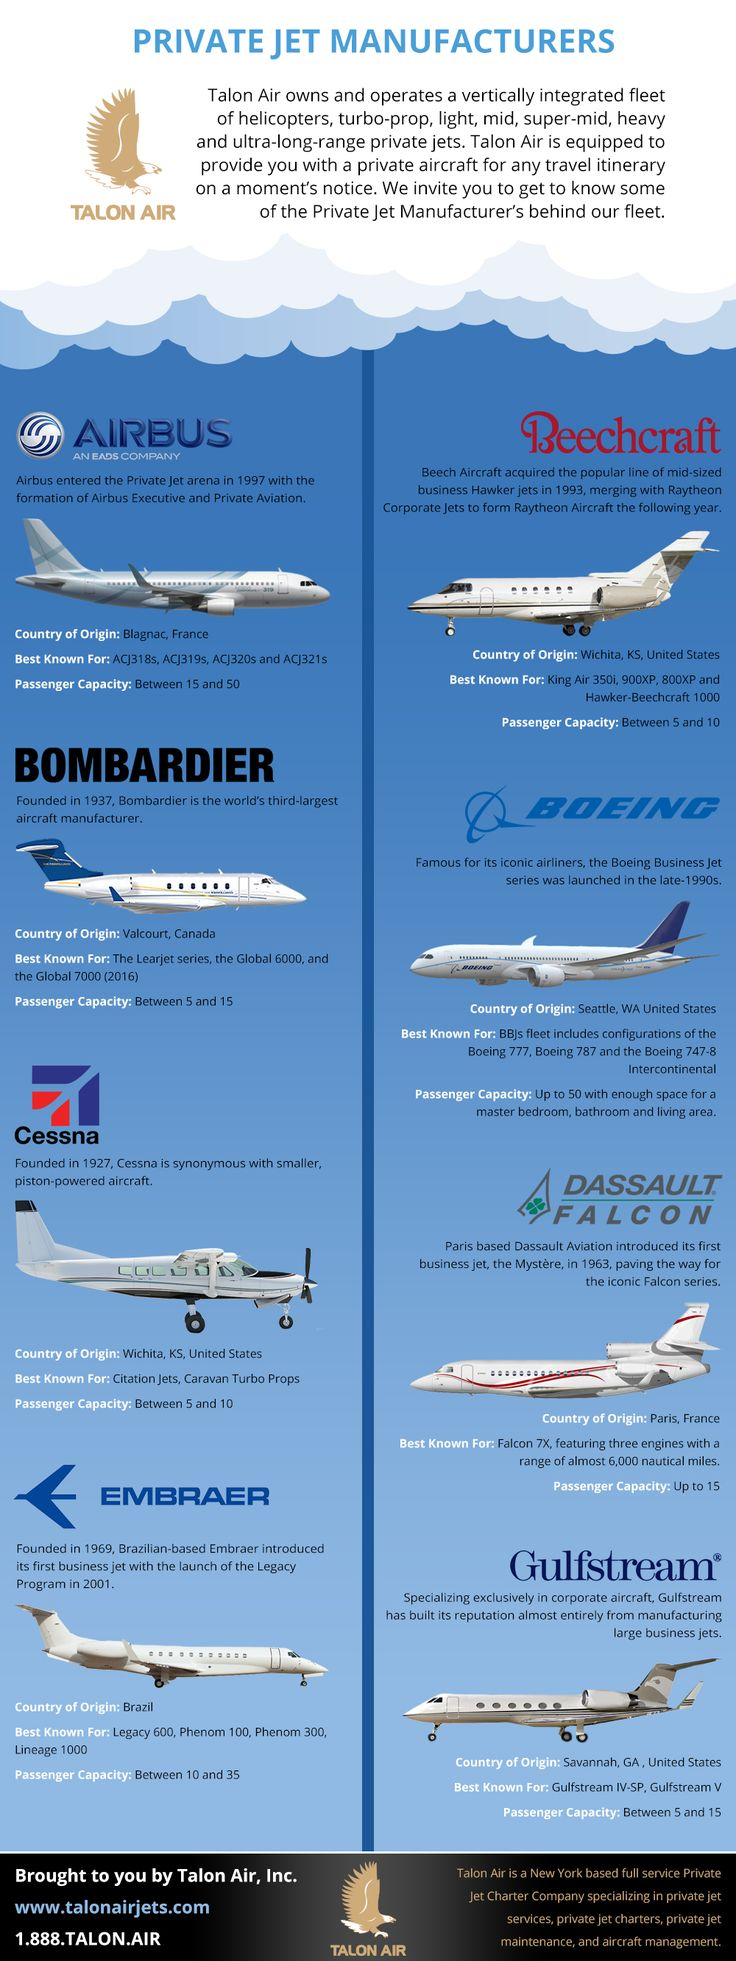 An #Infographic for www.TalonAirJets.com featuring different private jet manufacturers. #Travel